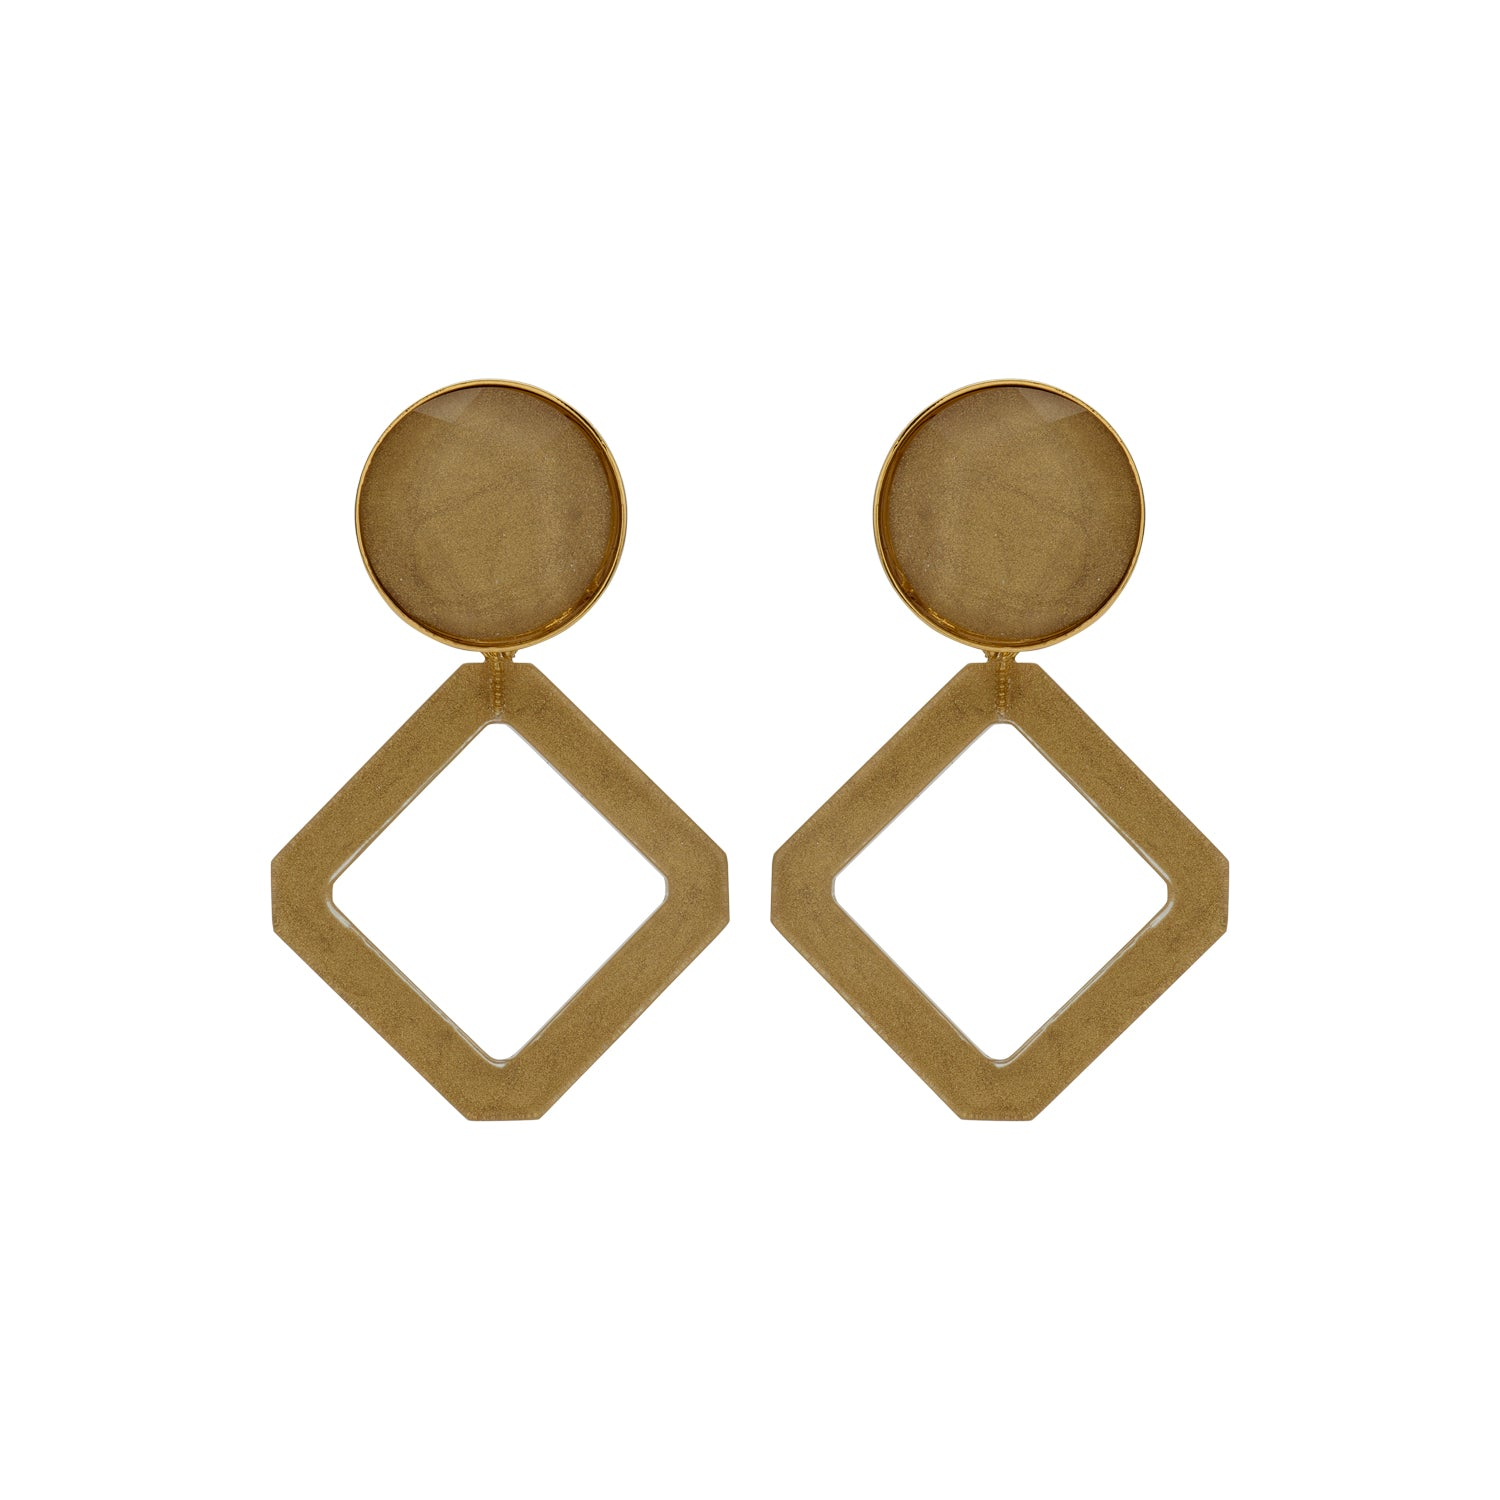 Alice beige earrings - Souvenirs de Pomme